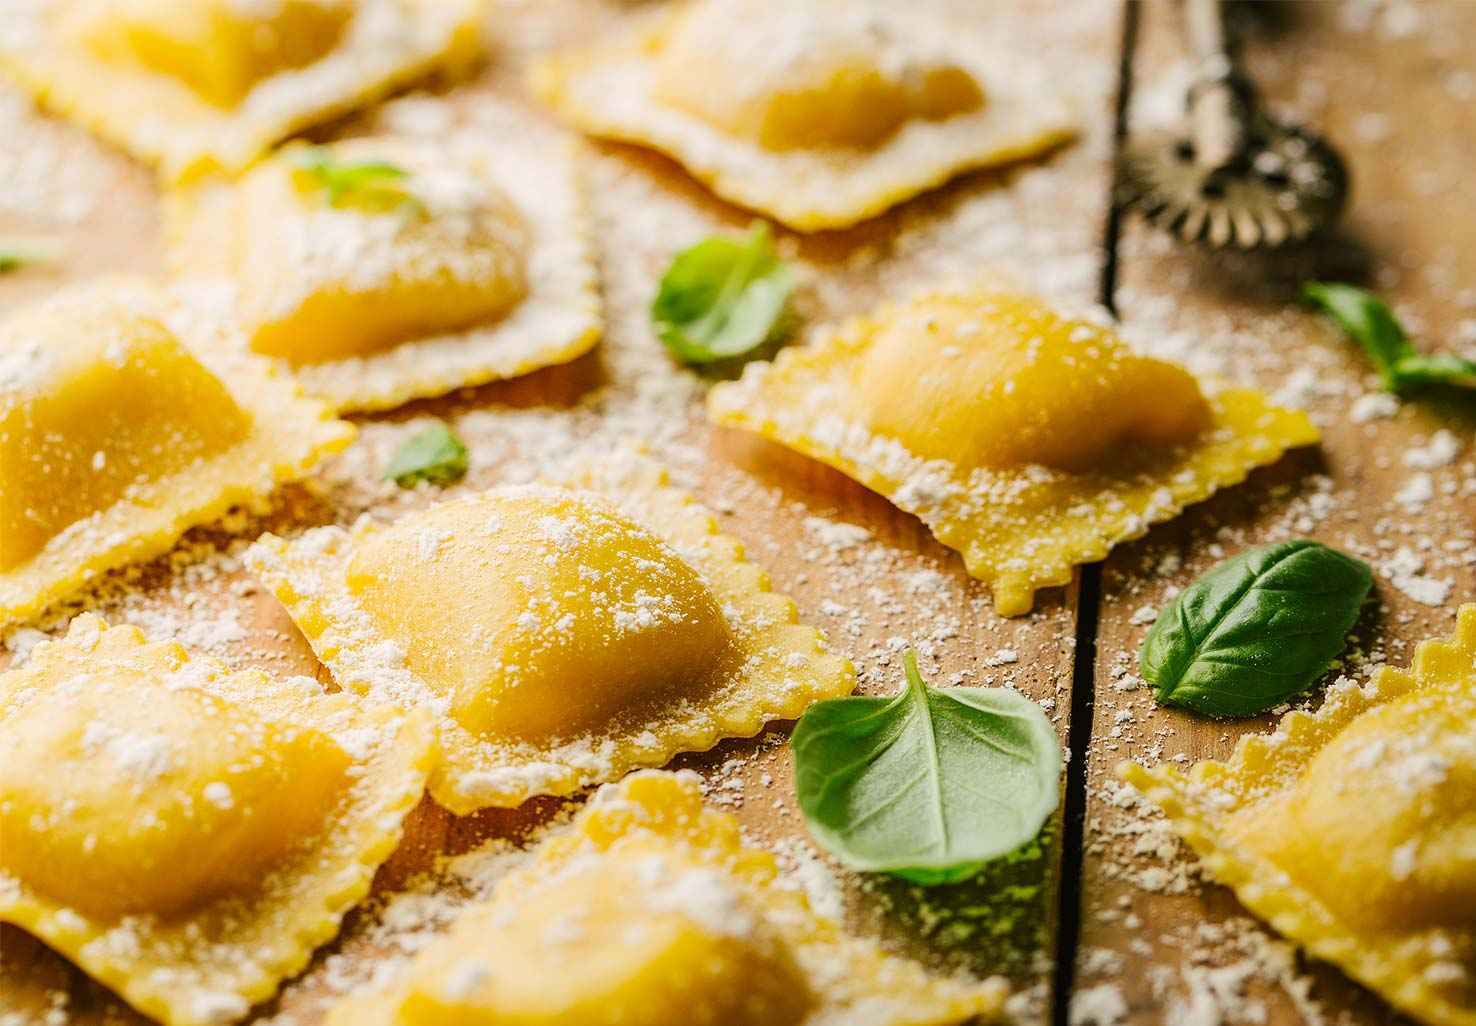 Wooden table with fresh made ravioli and basil leaves